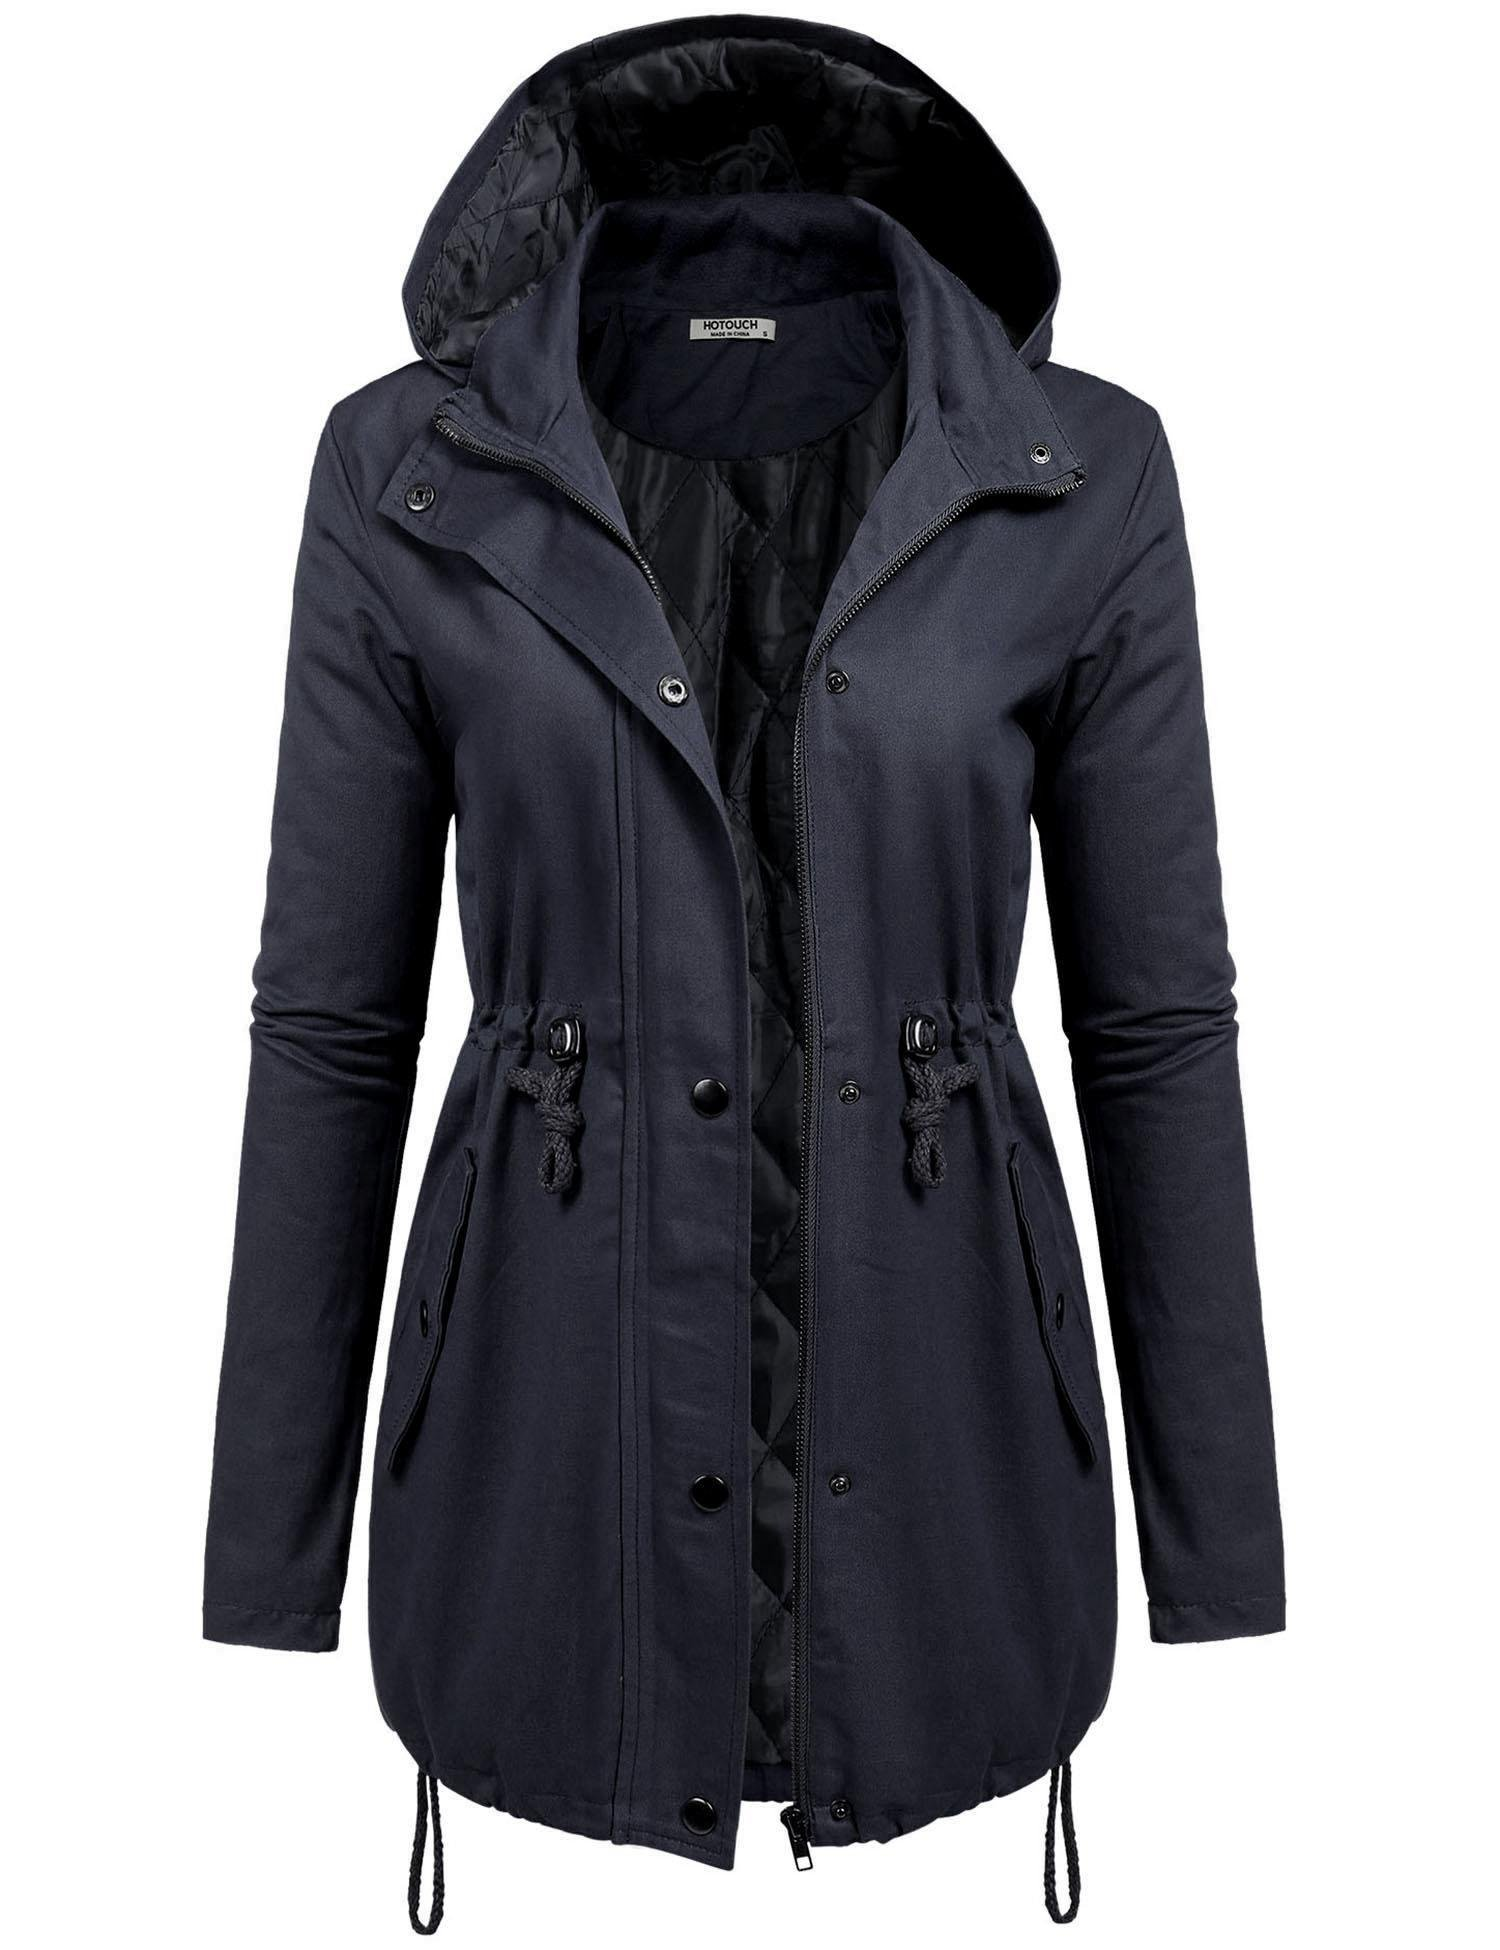 HOTOUCH Women's Versatile Militray Anorak Parka Hoodie jackets with Drawstring Navy Blue M